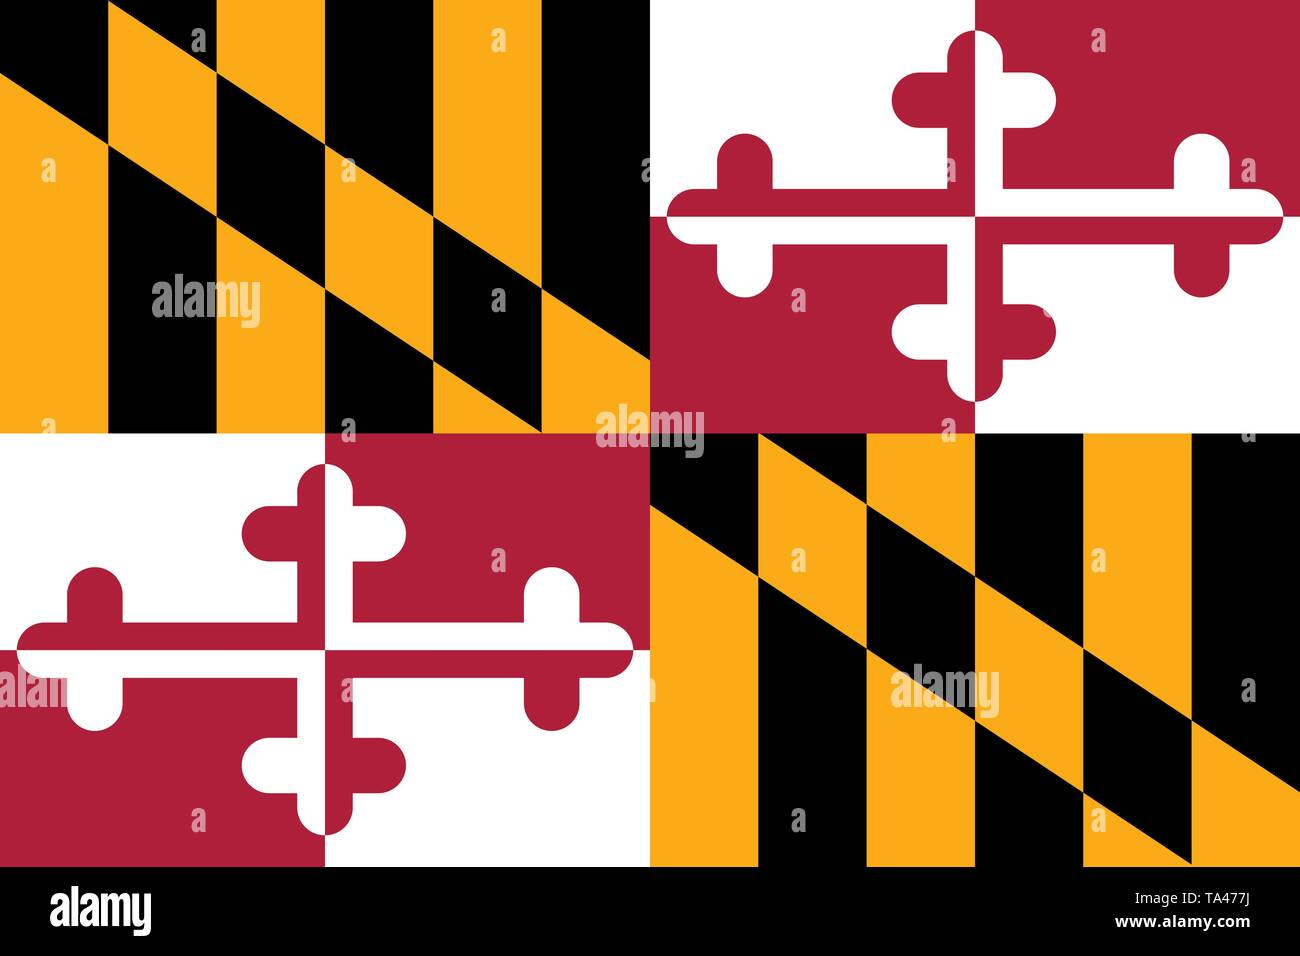 Maryland flag. Vector illustration. United States of America. - Stock Vector